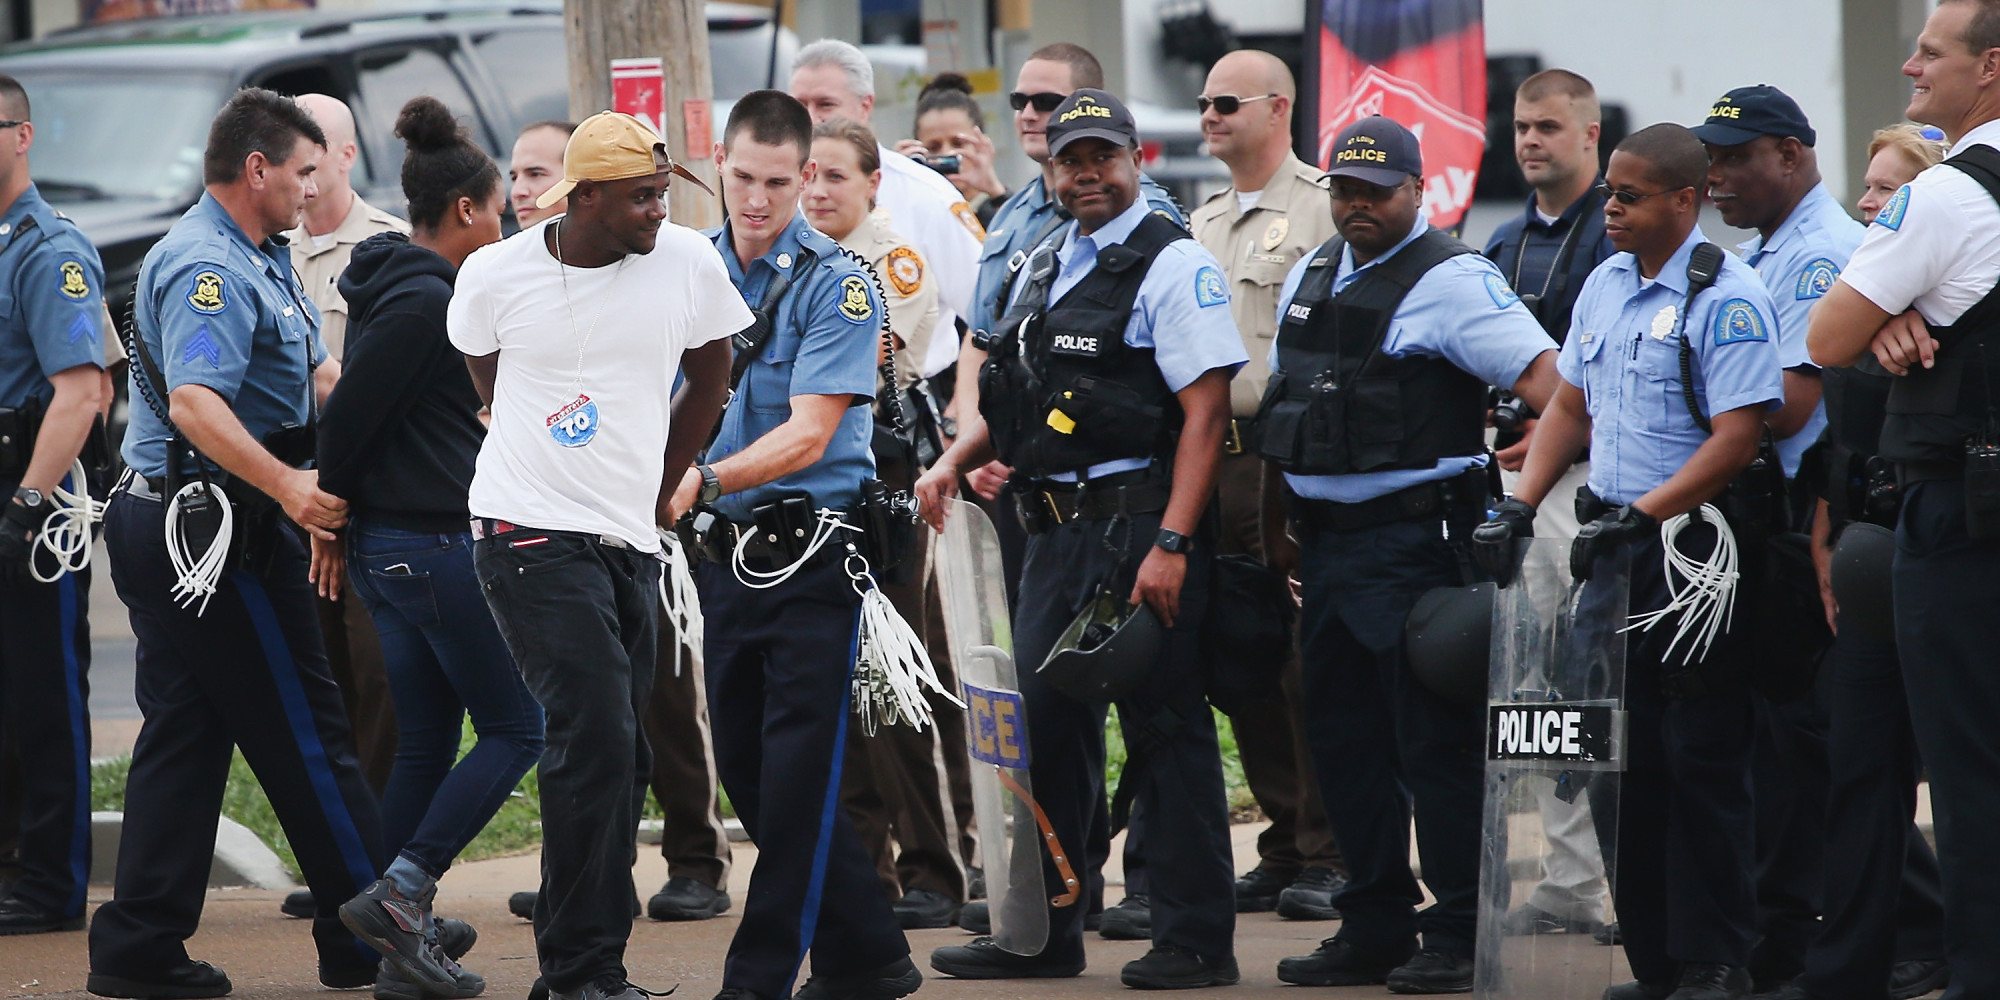 Police Arrest Protesters As St Louis Awaits Grand Jury